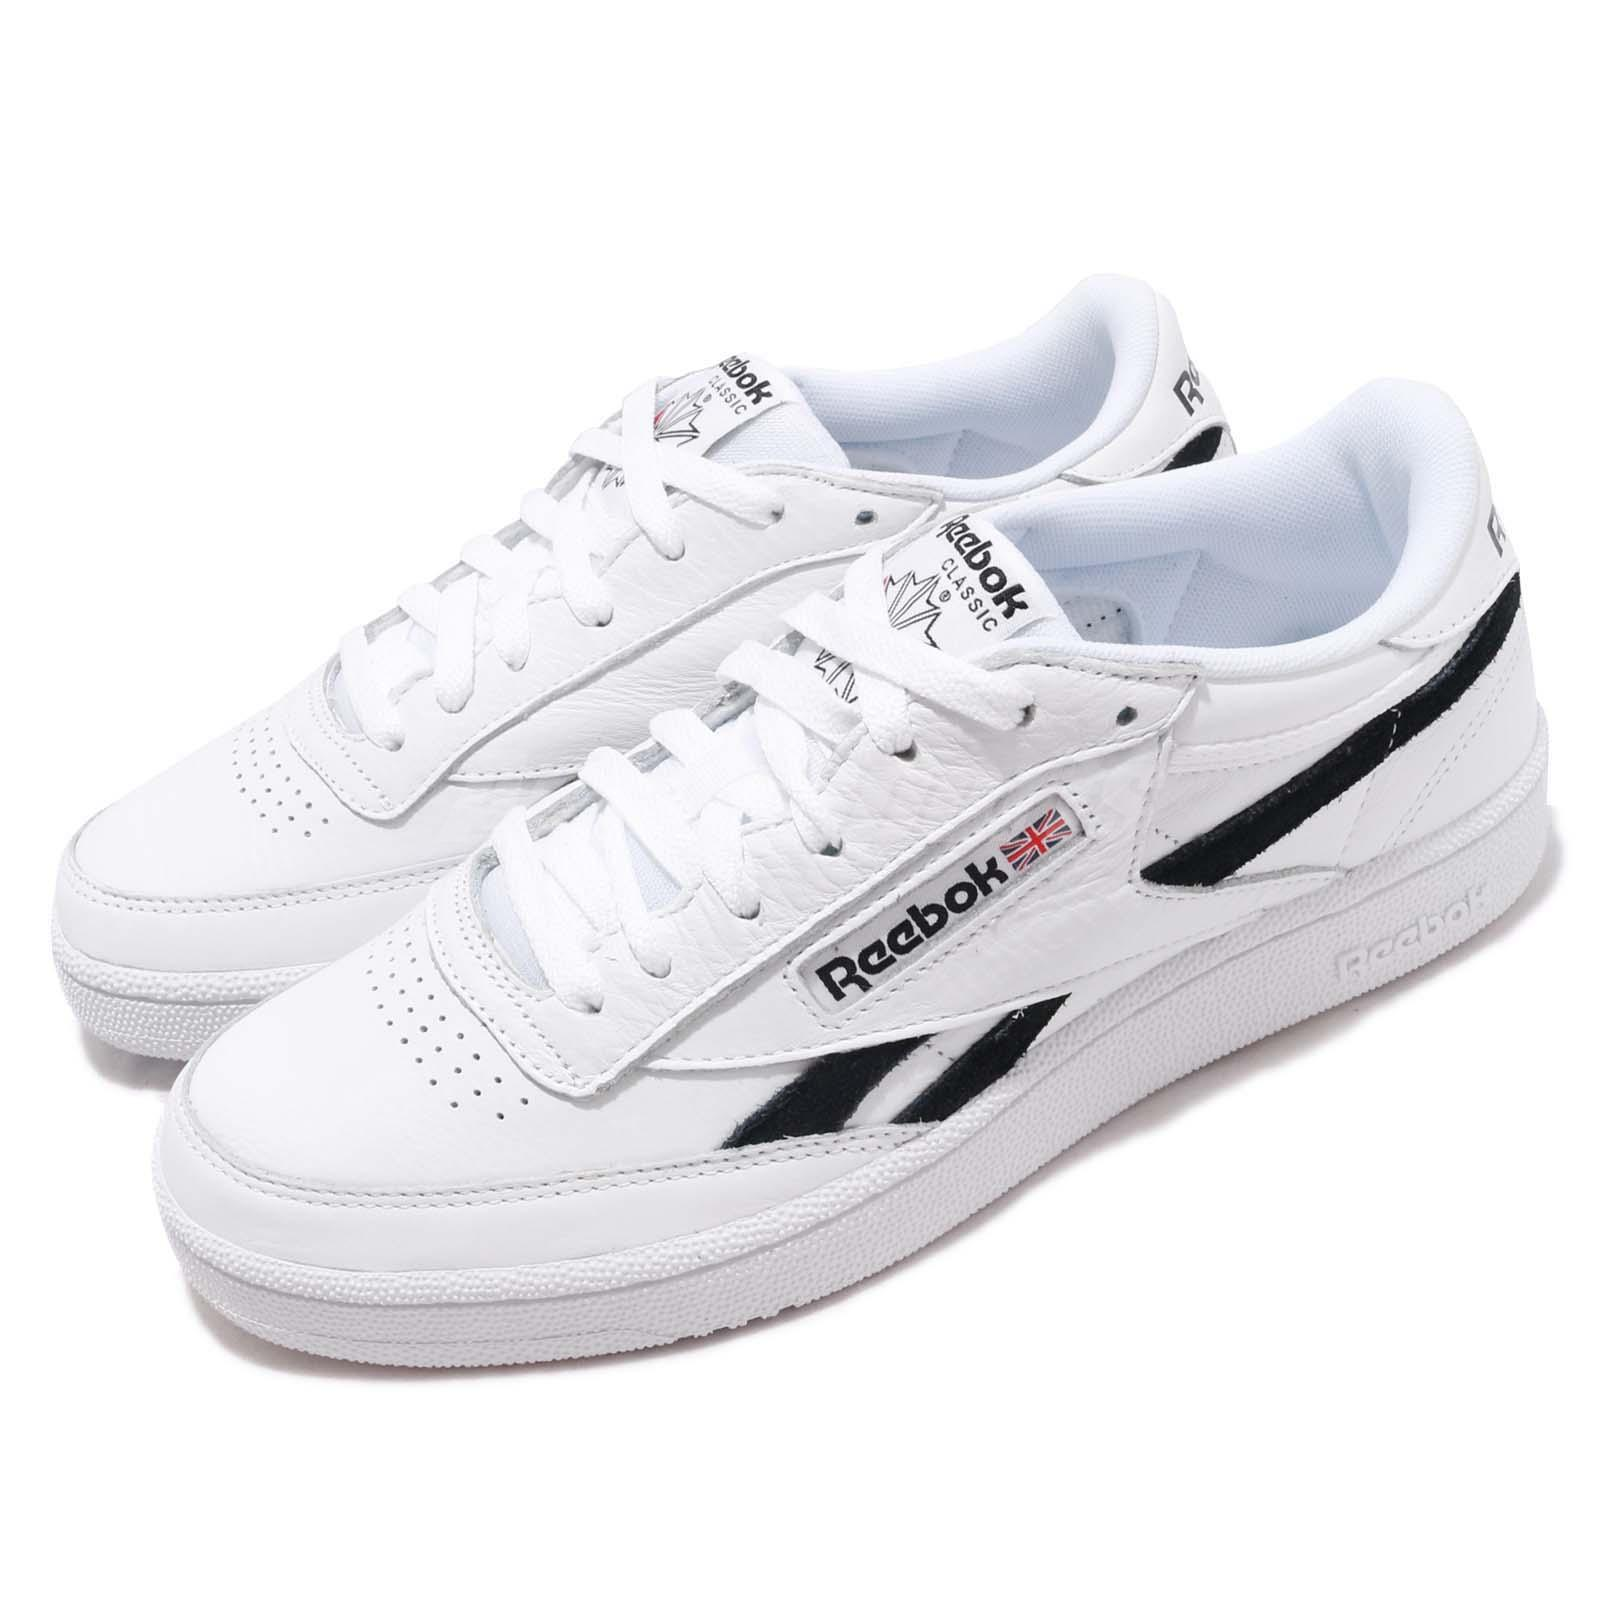 Details about Reebok Revenge Plus MU White Black Men Classic Casual Shoes Sneakers DV4065